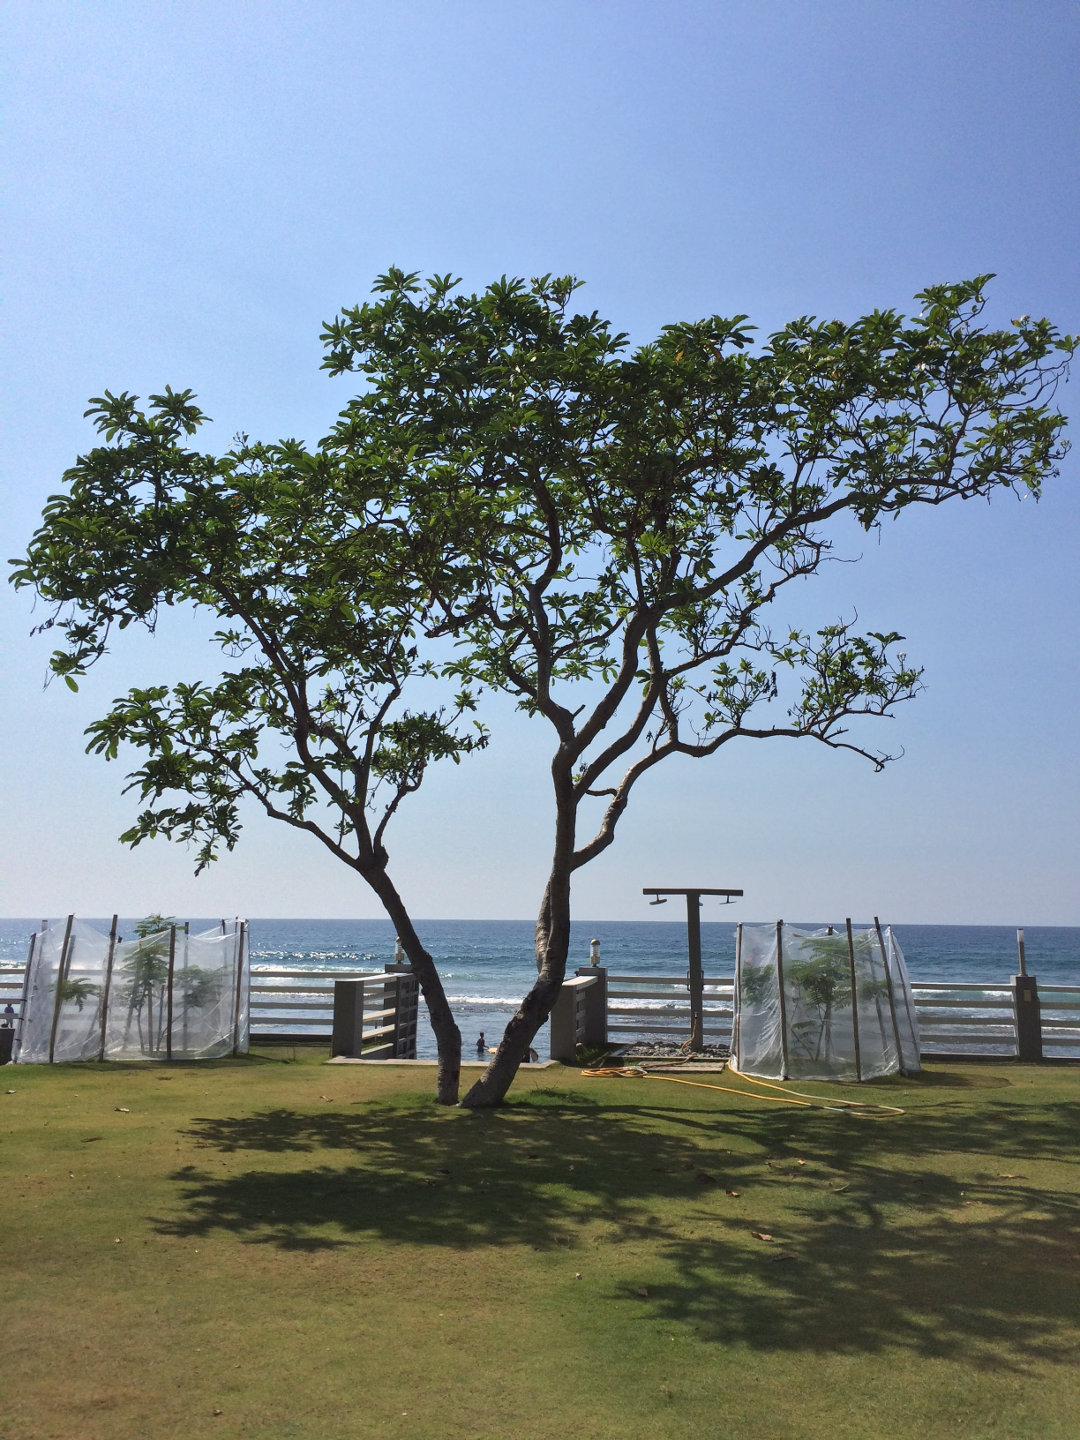 A tree on the grassy lawn of a resort by the sea, in San Juan, La Union, Philippines.